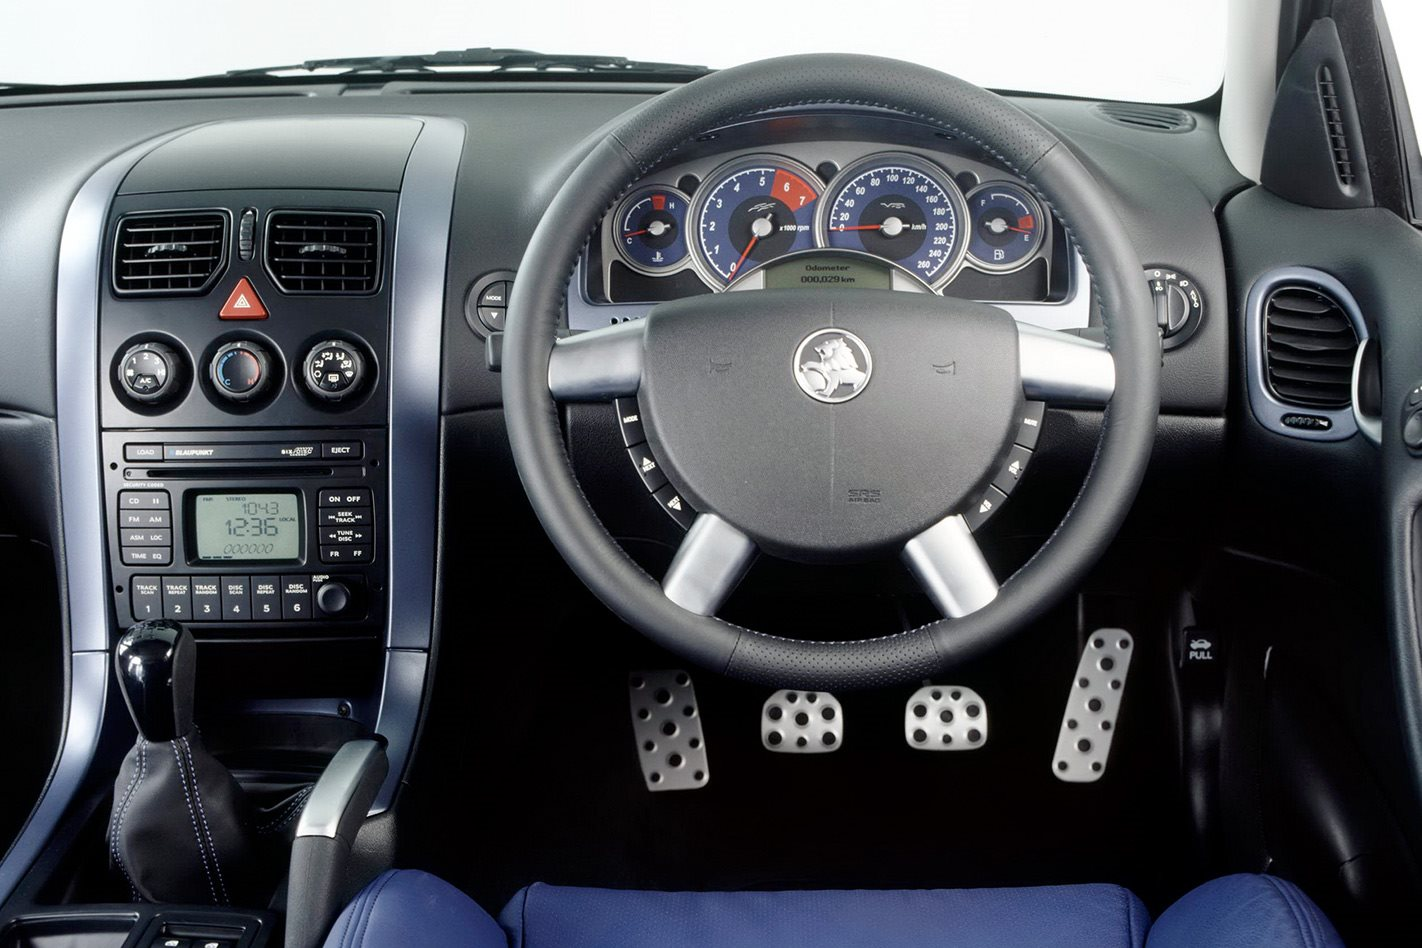 Holden Commodore VY interior